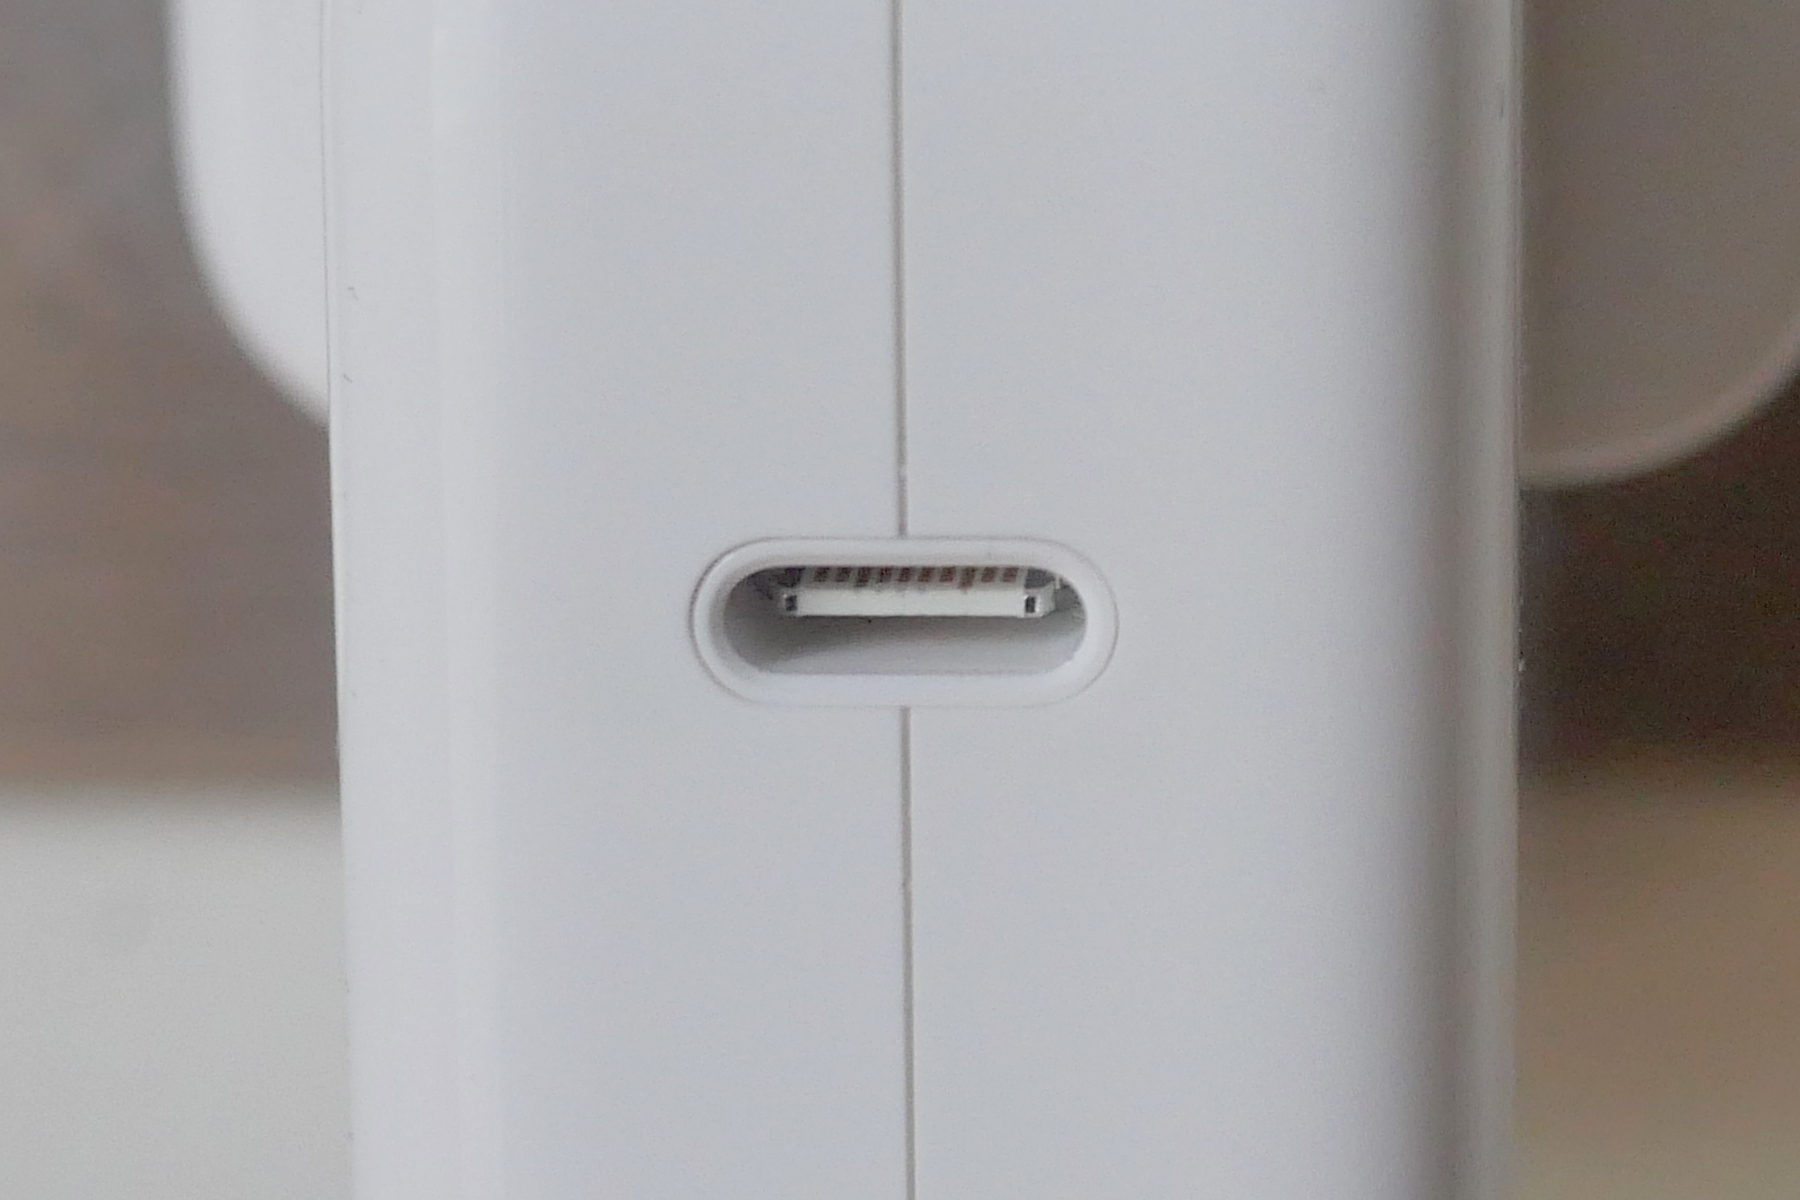 USB-C ports look very similar to Lightning ports, but they're distinguishable by the visible 'prong' - a common characteristic of all USB ports.